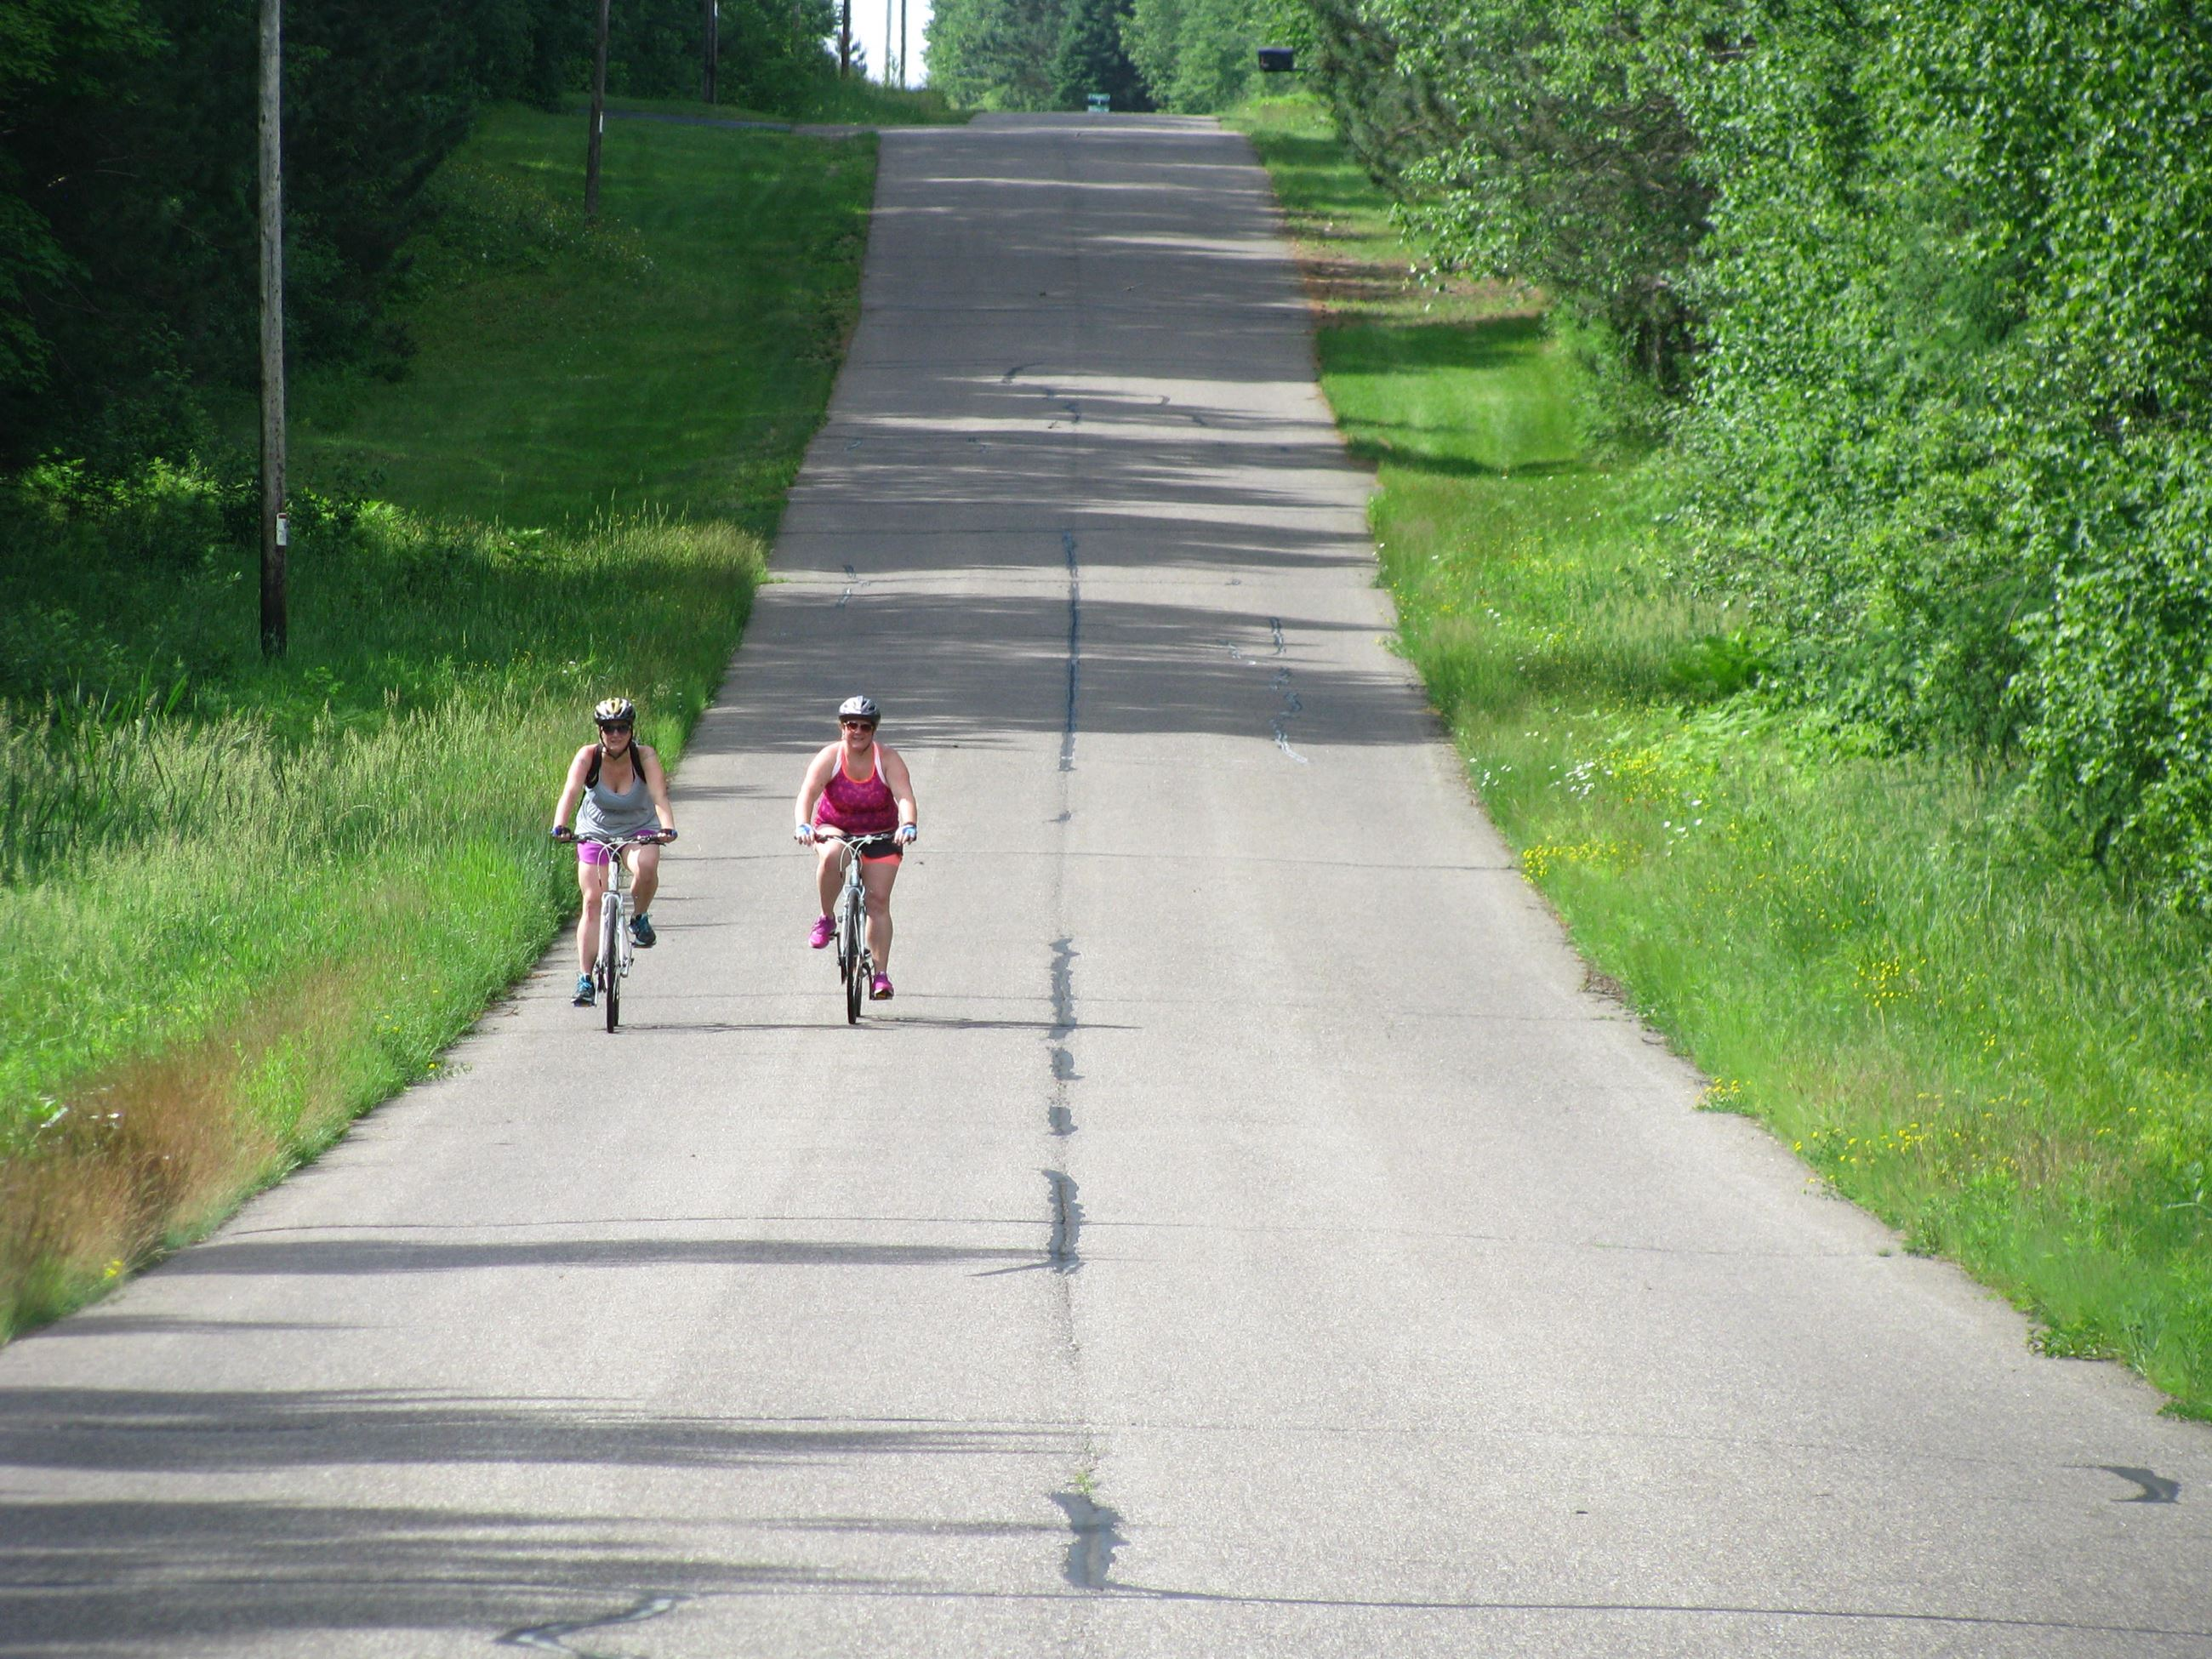 IMG_3600 - Bicycling - road